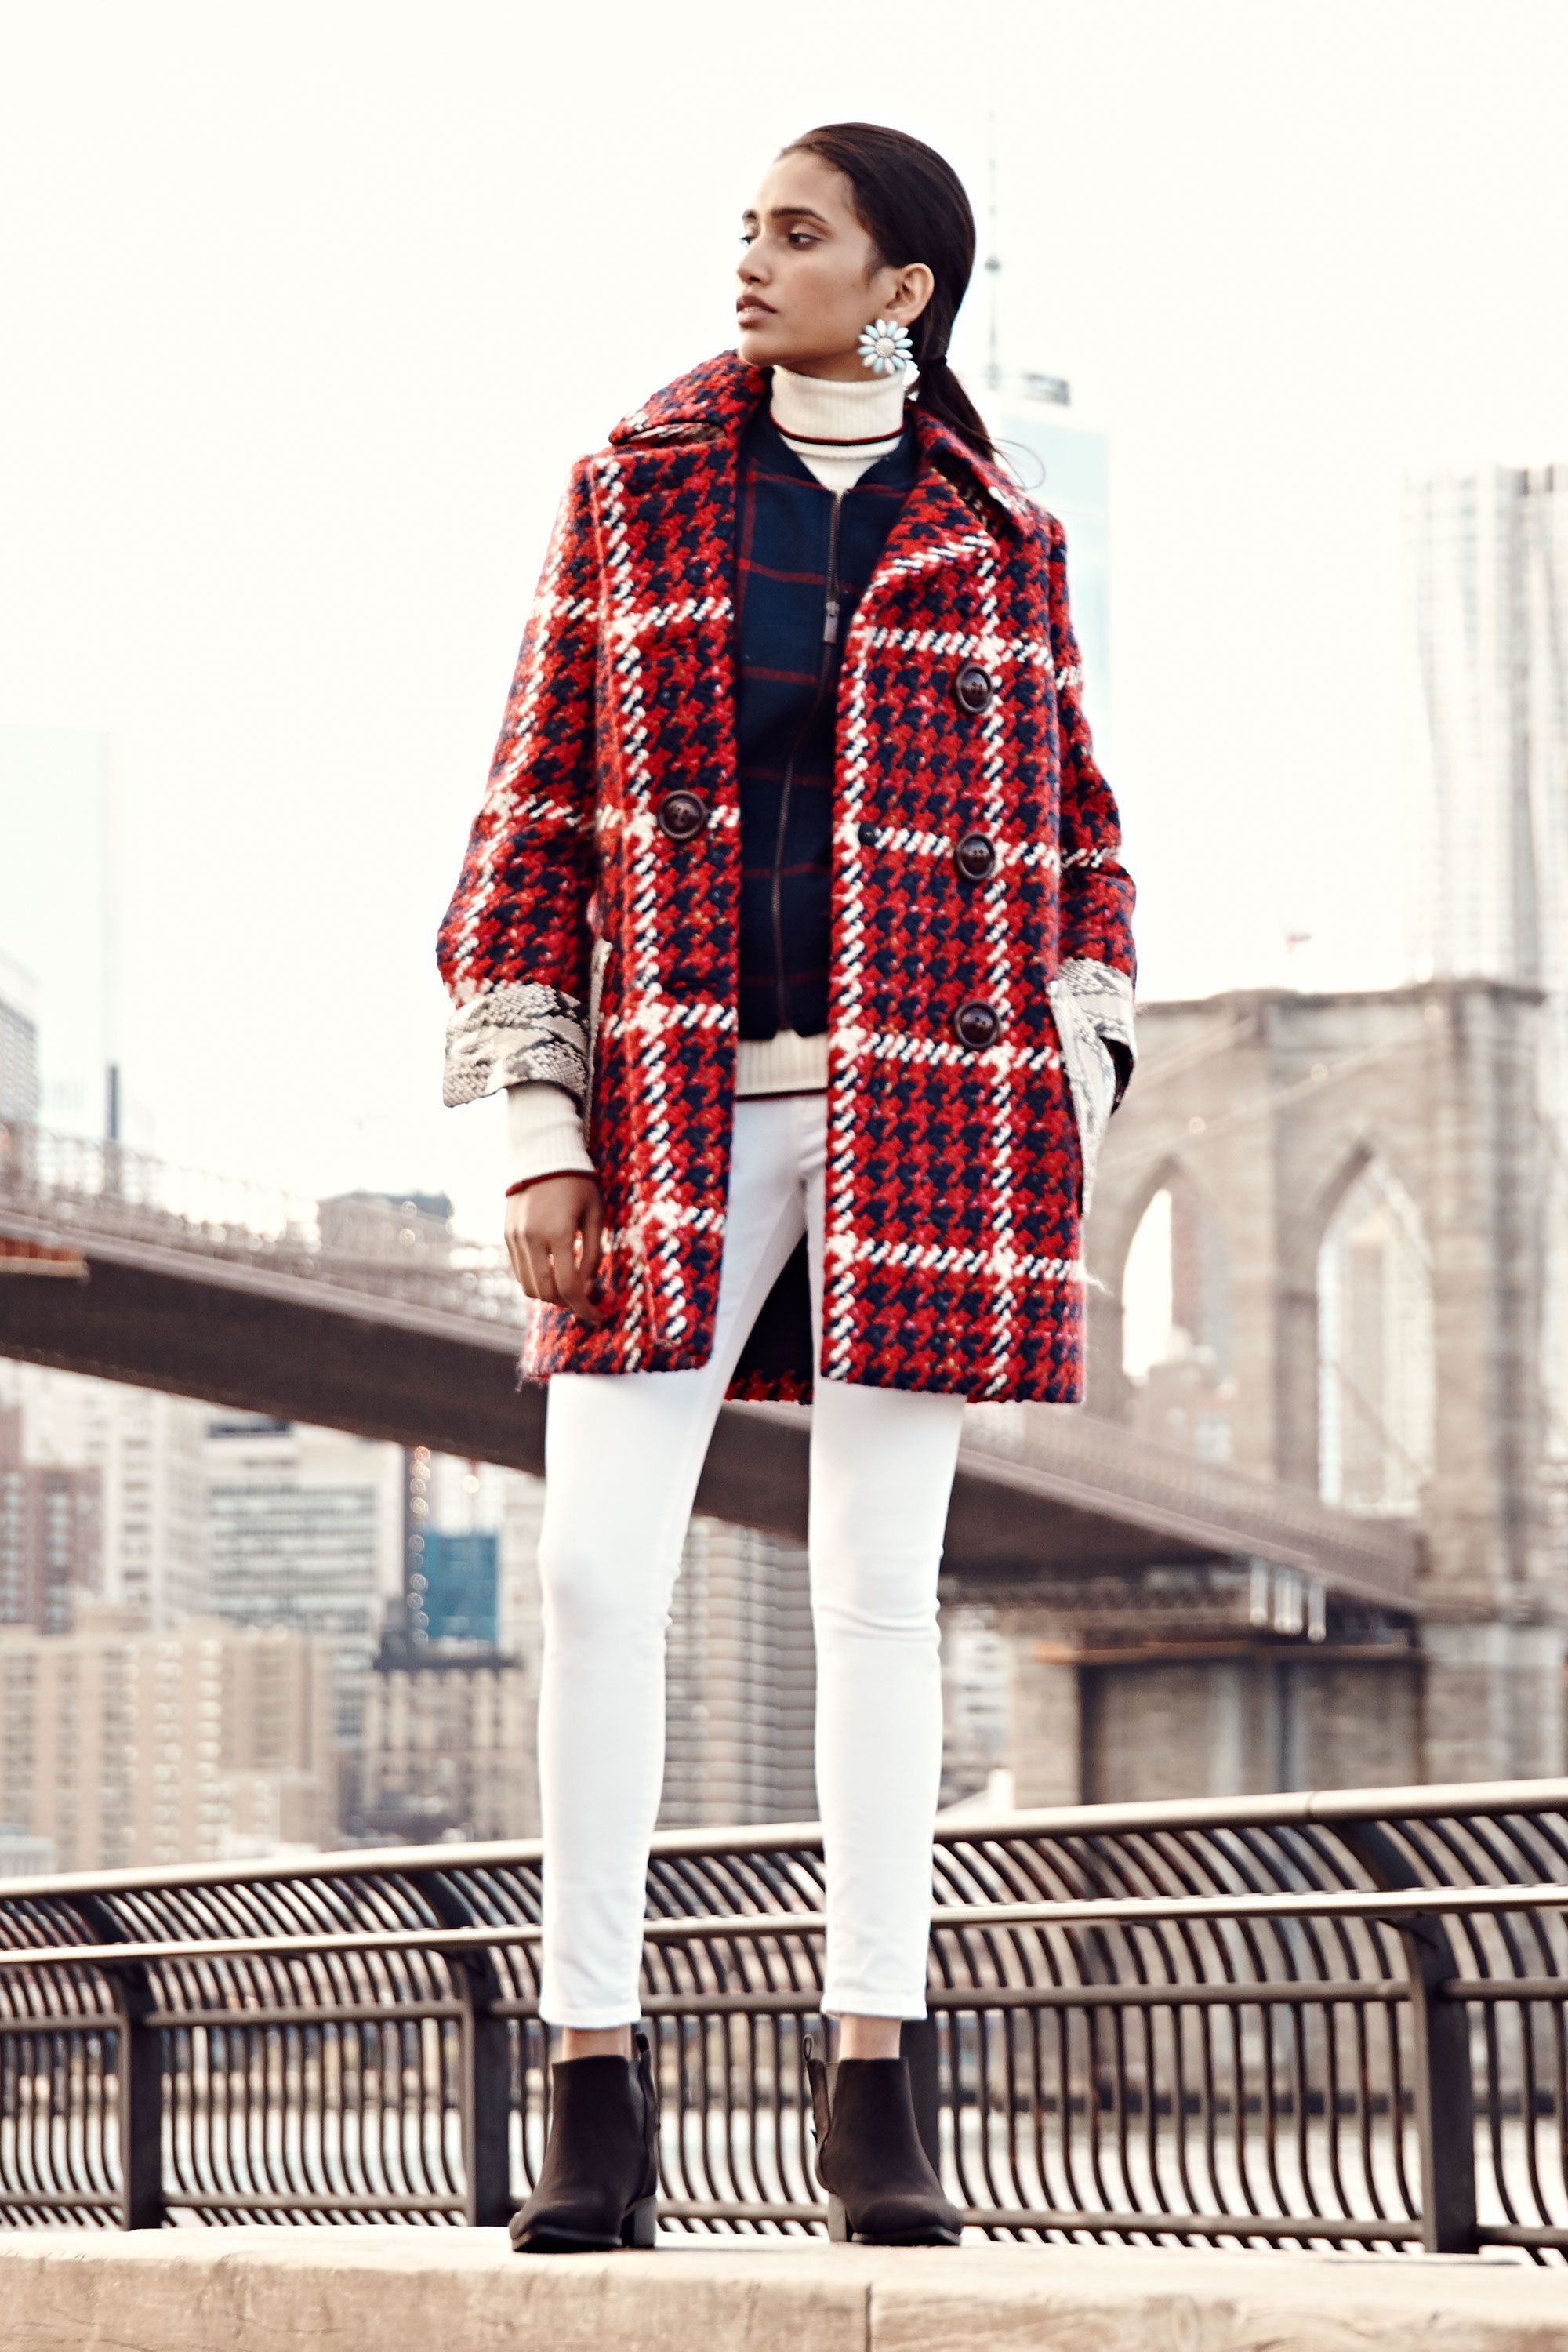 "<p>A swingy plaid coat in a classic palette feels luxe and timeless. See how it even winterizes a favorite pair of white skinnies?</p><p><em><em>Miu Miu Coat, $4,585, <a href=""http://www.miumiu.com/"" target=""_blank"">miumiu.com</a>; </em>Old Navy Plaid Wool-Blend Bomber Jacket, $64.94, <a href=""http://oldnavy.gap.com/browse/product.do?cid=74683&tid=onsm004538&vid=1&pid=716773002"" target=""_blank"">oldnavy.com</a>; Old Navy Mid-Rise Rockstar Skinny Jeans, $22, <a href=""http://oldnavy.gap.com/browse/product.do?cid=85732&tid=onsm004538&vid=1&pid=170509002"" target=""_blank"">oldnavy.com</a>; Maison Kitsuné Extrafine Wool Pullover Turtleneck, $495, Maison Kitsune (212-481-6010)</em><br></p>"